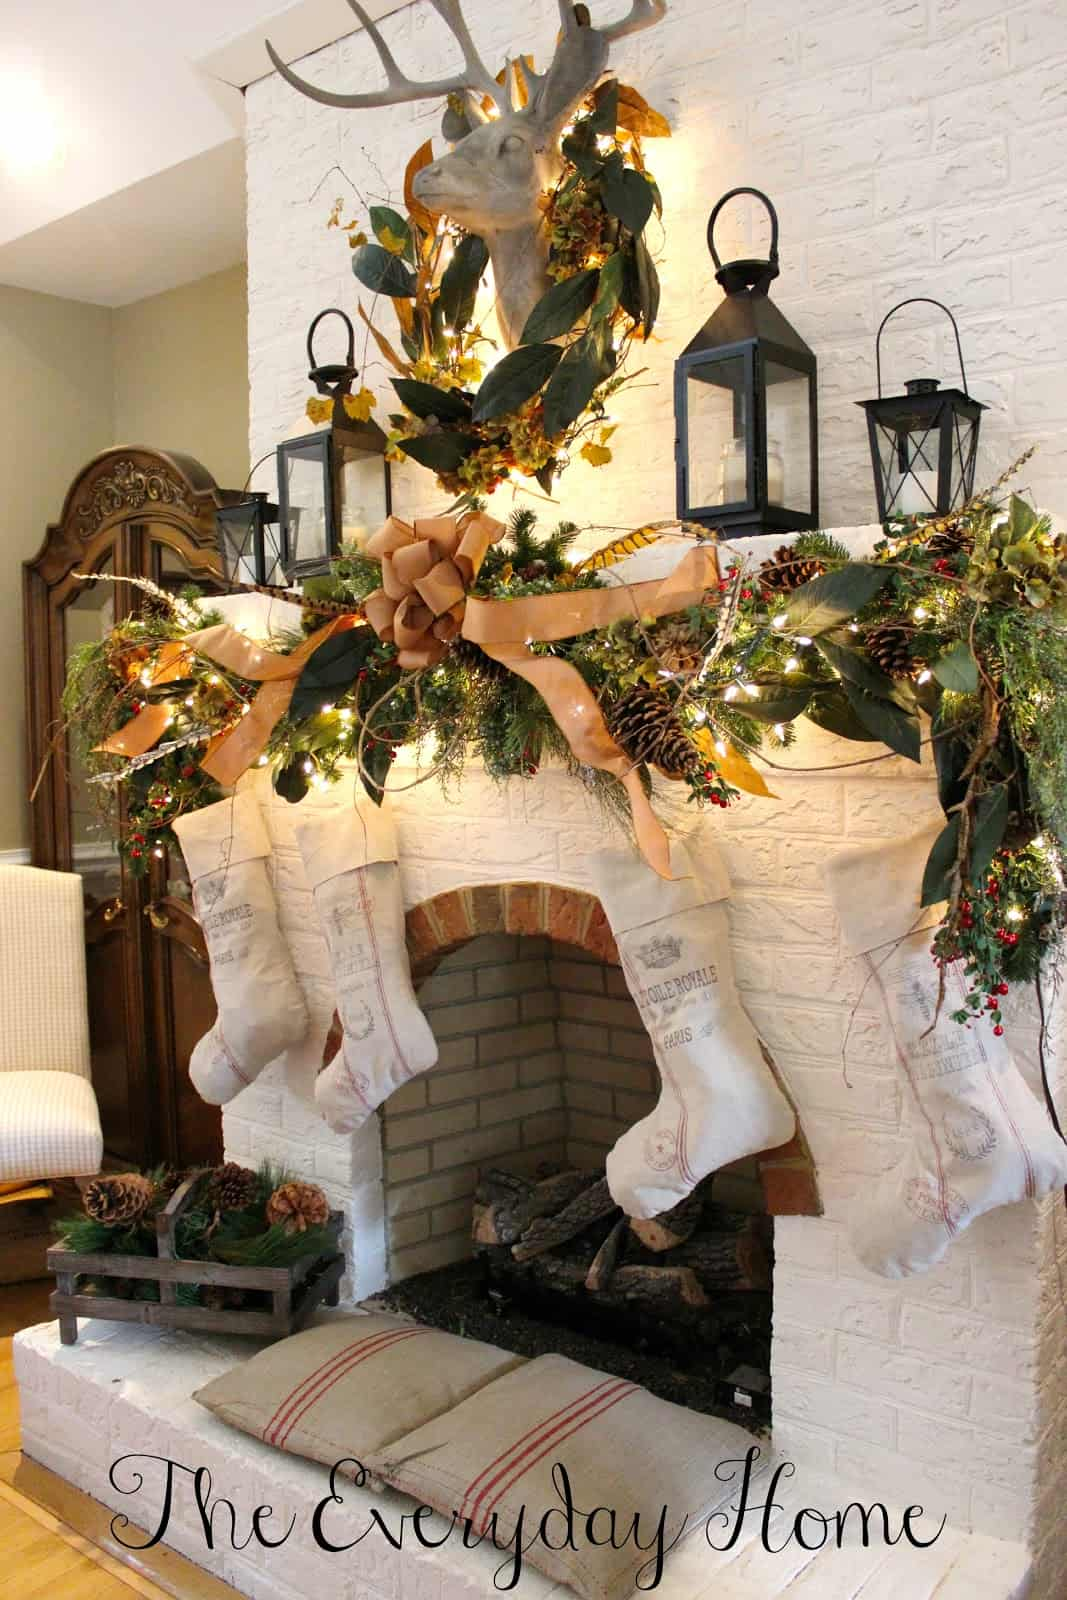 Christmas Mantel Decorating Ideas-23-1 Kindesign